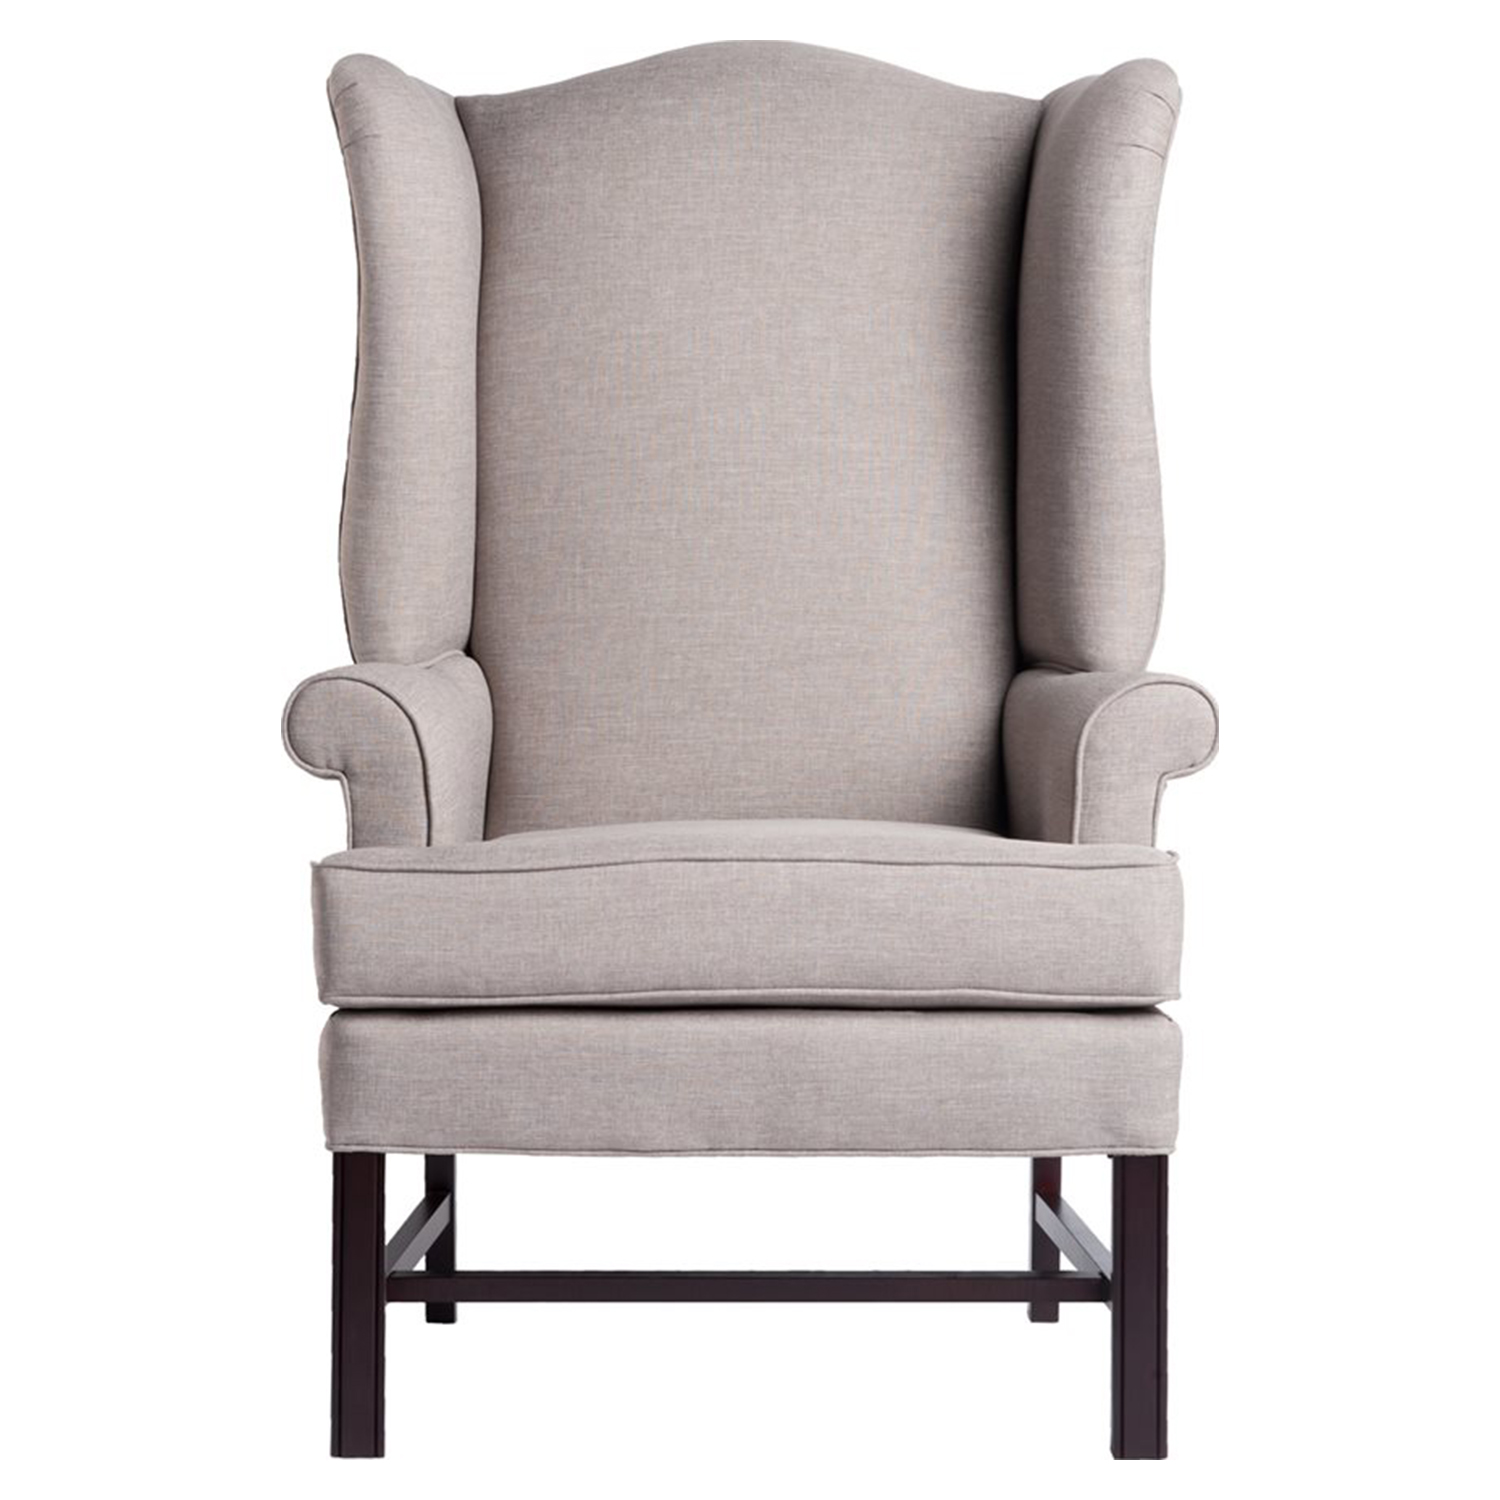 Chippendale Wingback Chair - Jitterbug Linen, Cherry - CP-8000-01